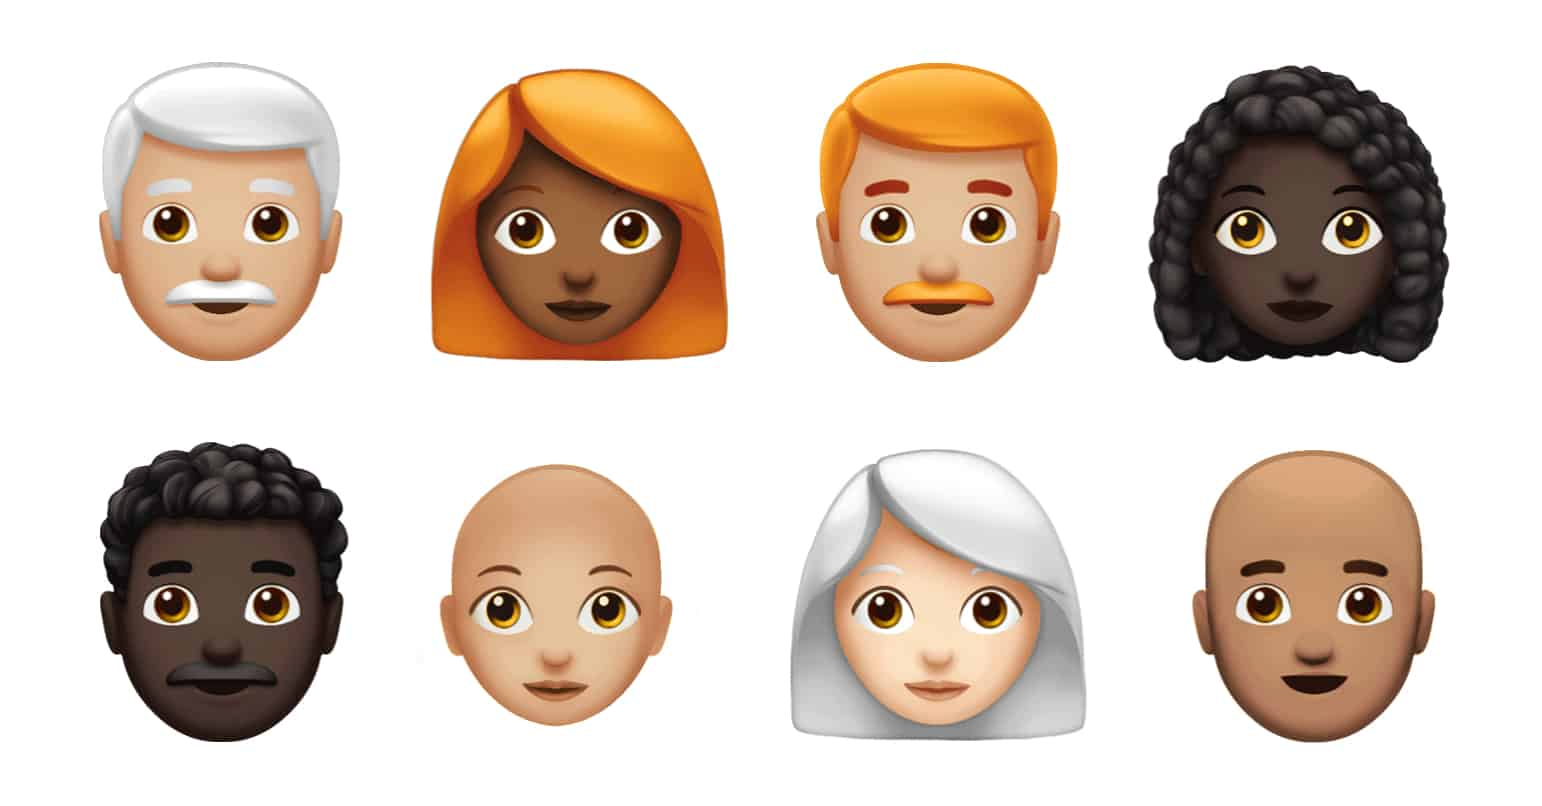 New Apple emoji offer more hair options, including the ever-popular no hair option.